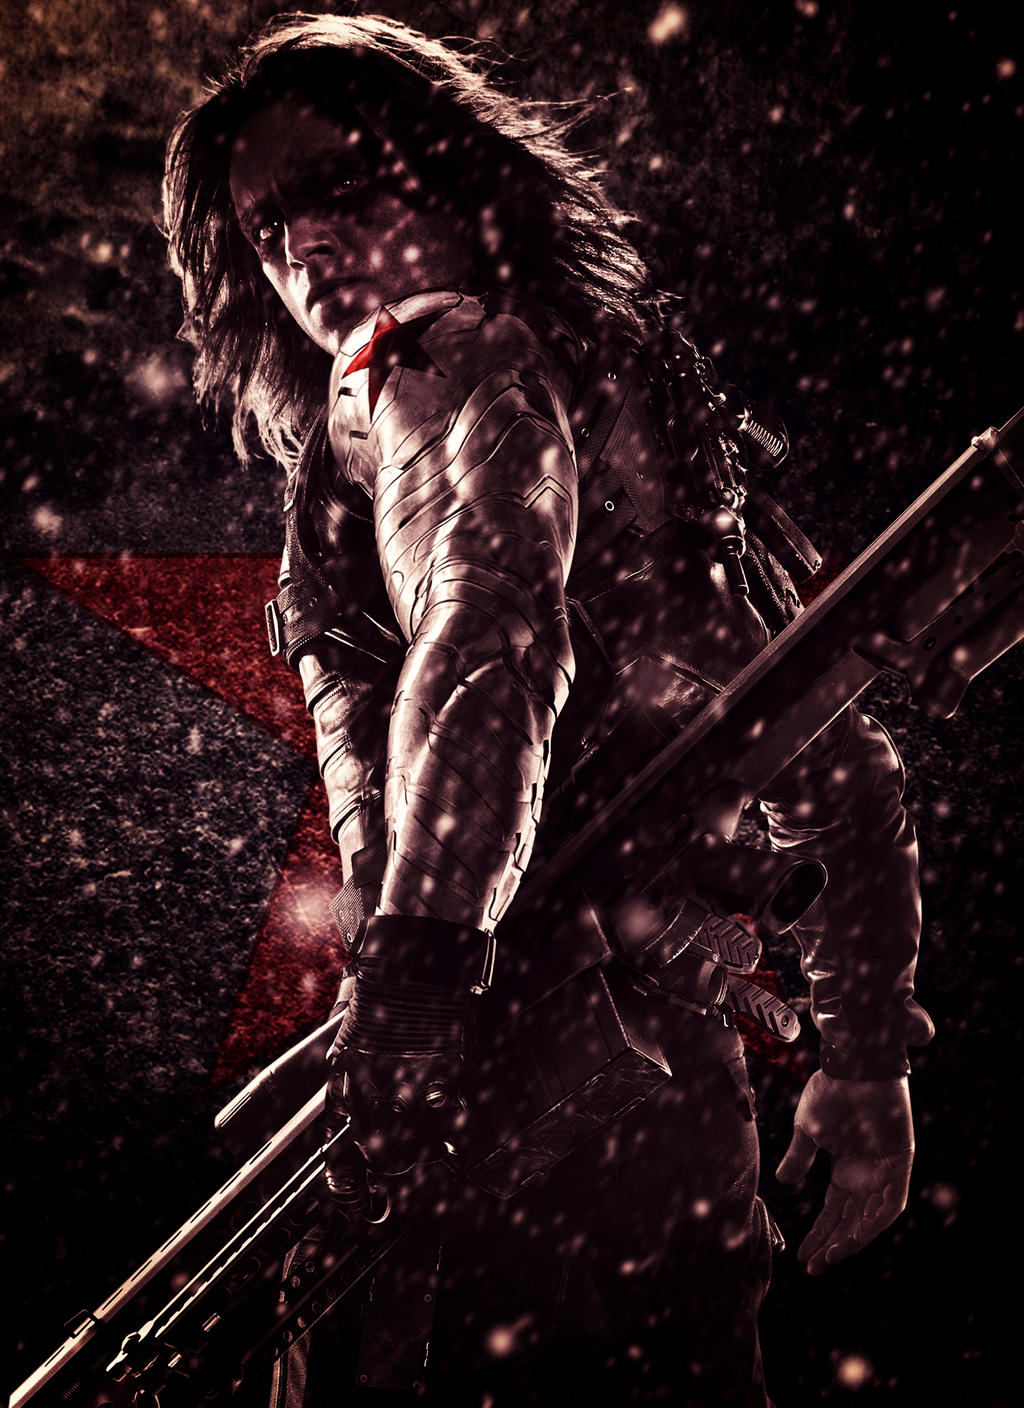 bucky barnes winter soldier wallpaper - photo #2